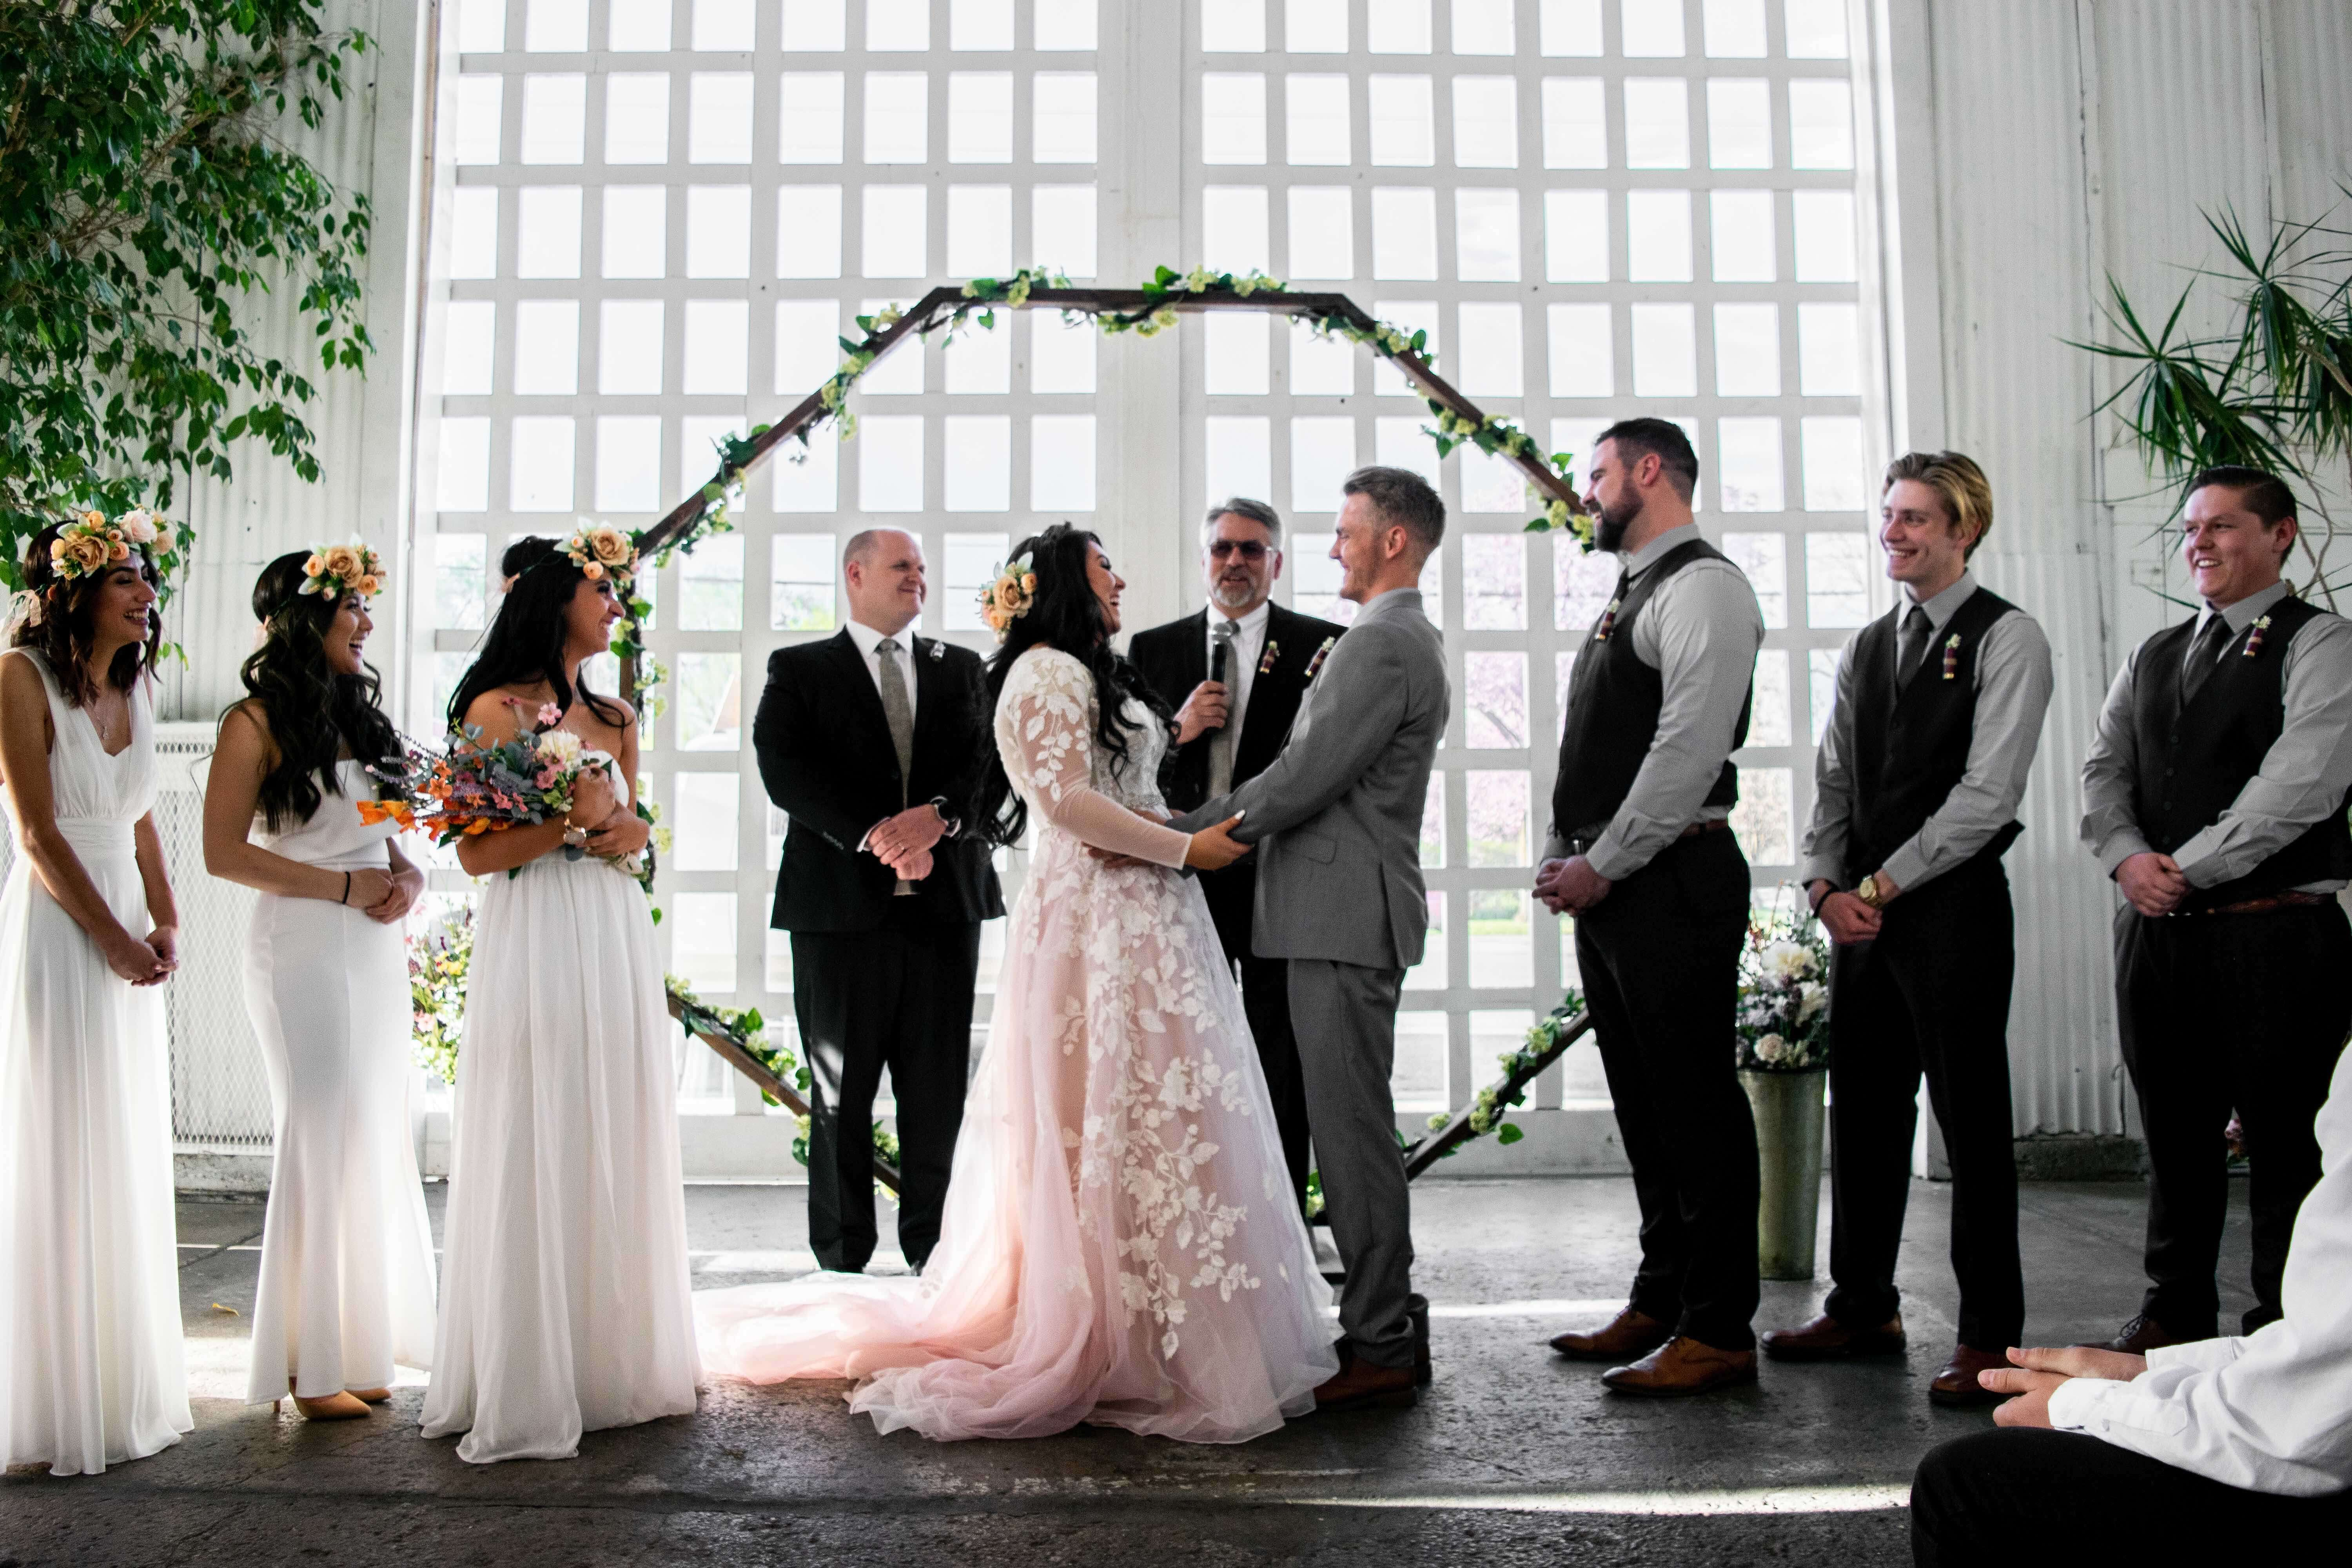 Bridal party standing at octagonal altar indoors